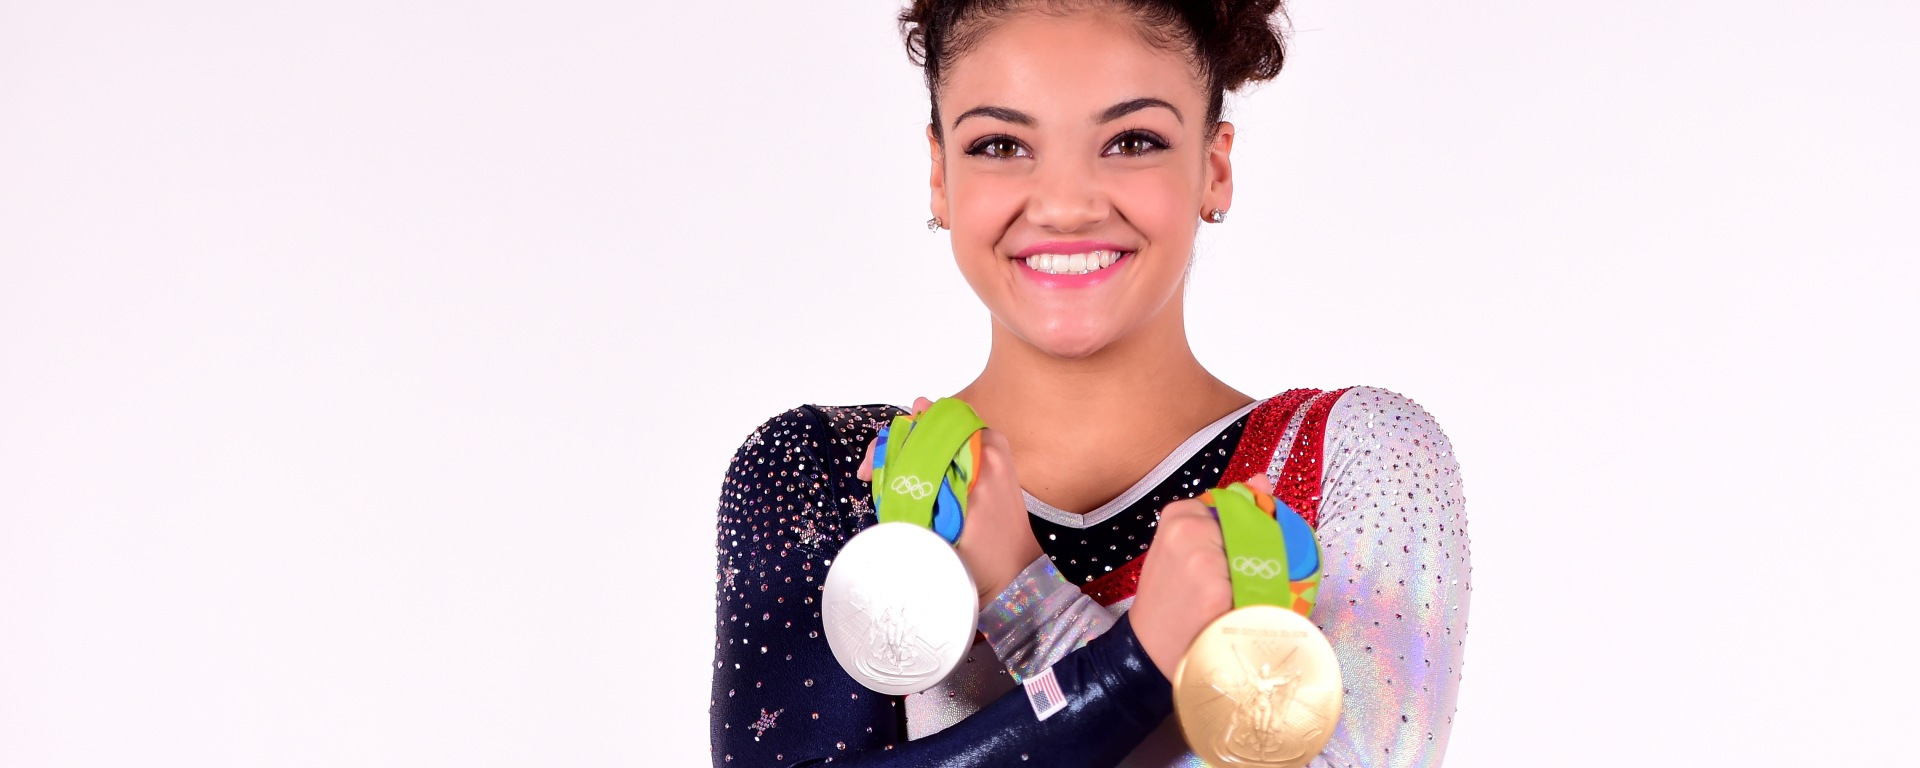 Laurie Hernandez poses in her team USA gymnastics leotard while holding a gold and silver medal.